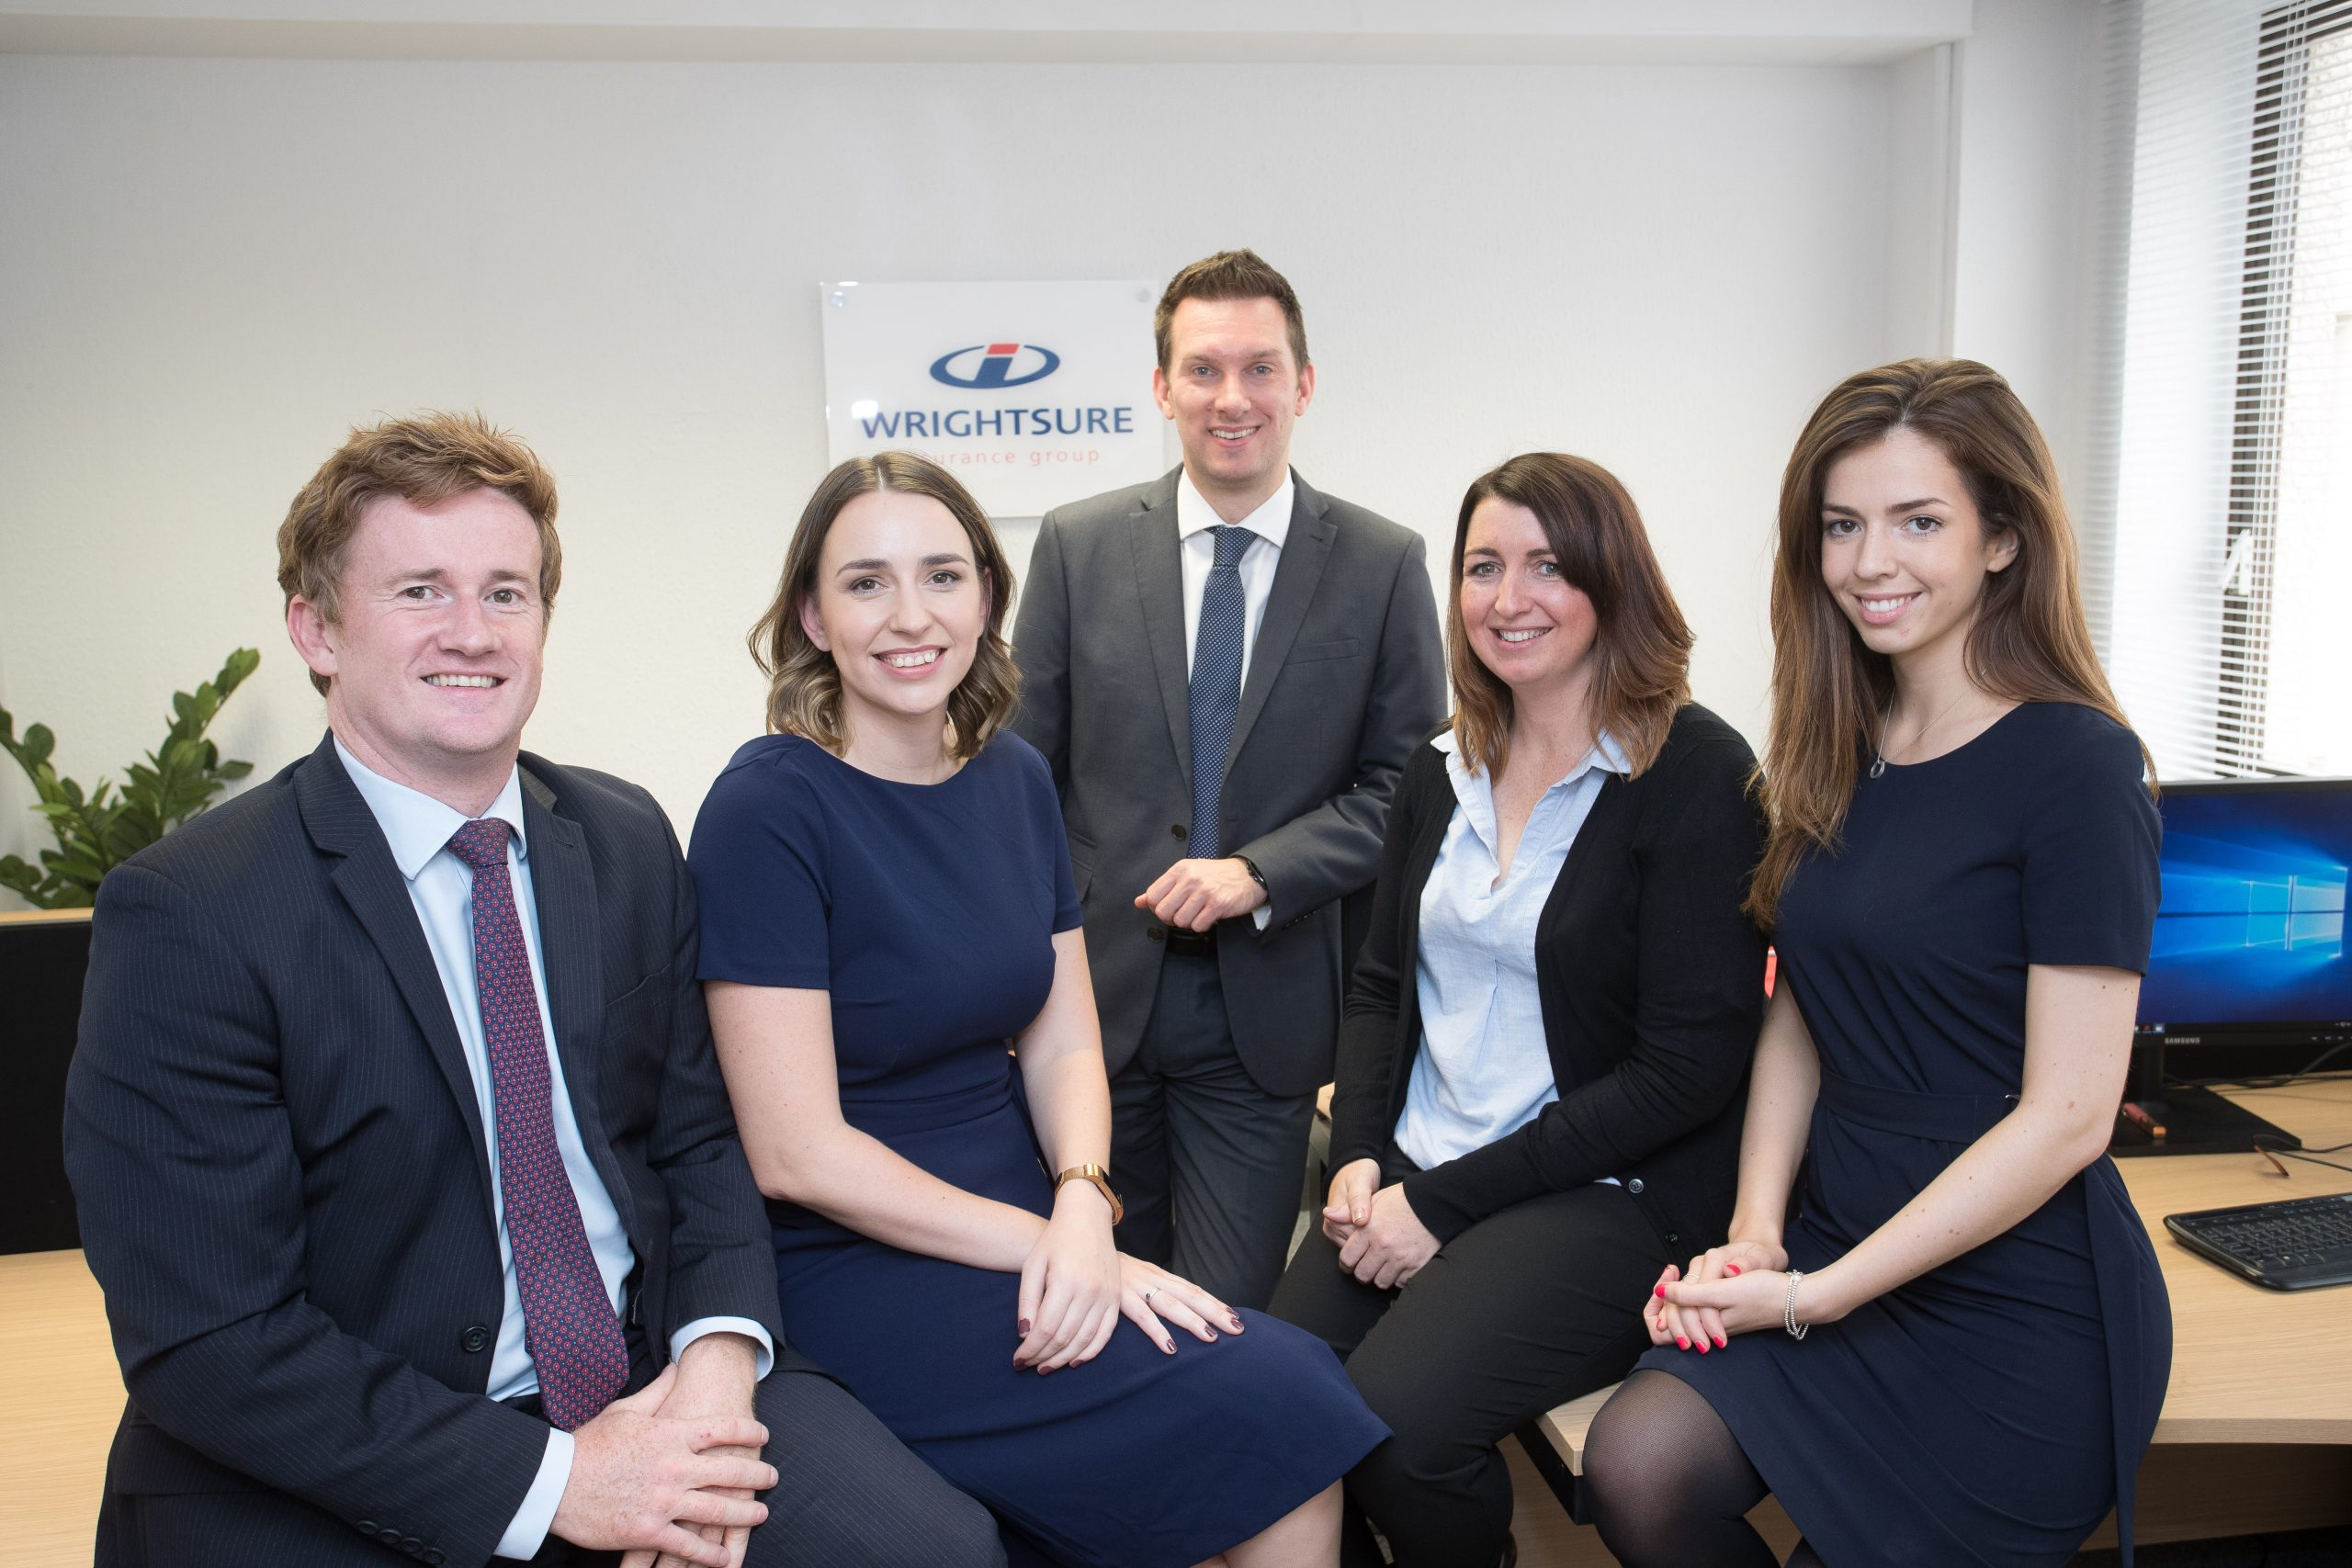 Wrightsure opens Stockport office to attract quality employees